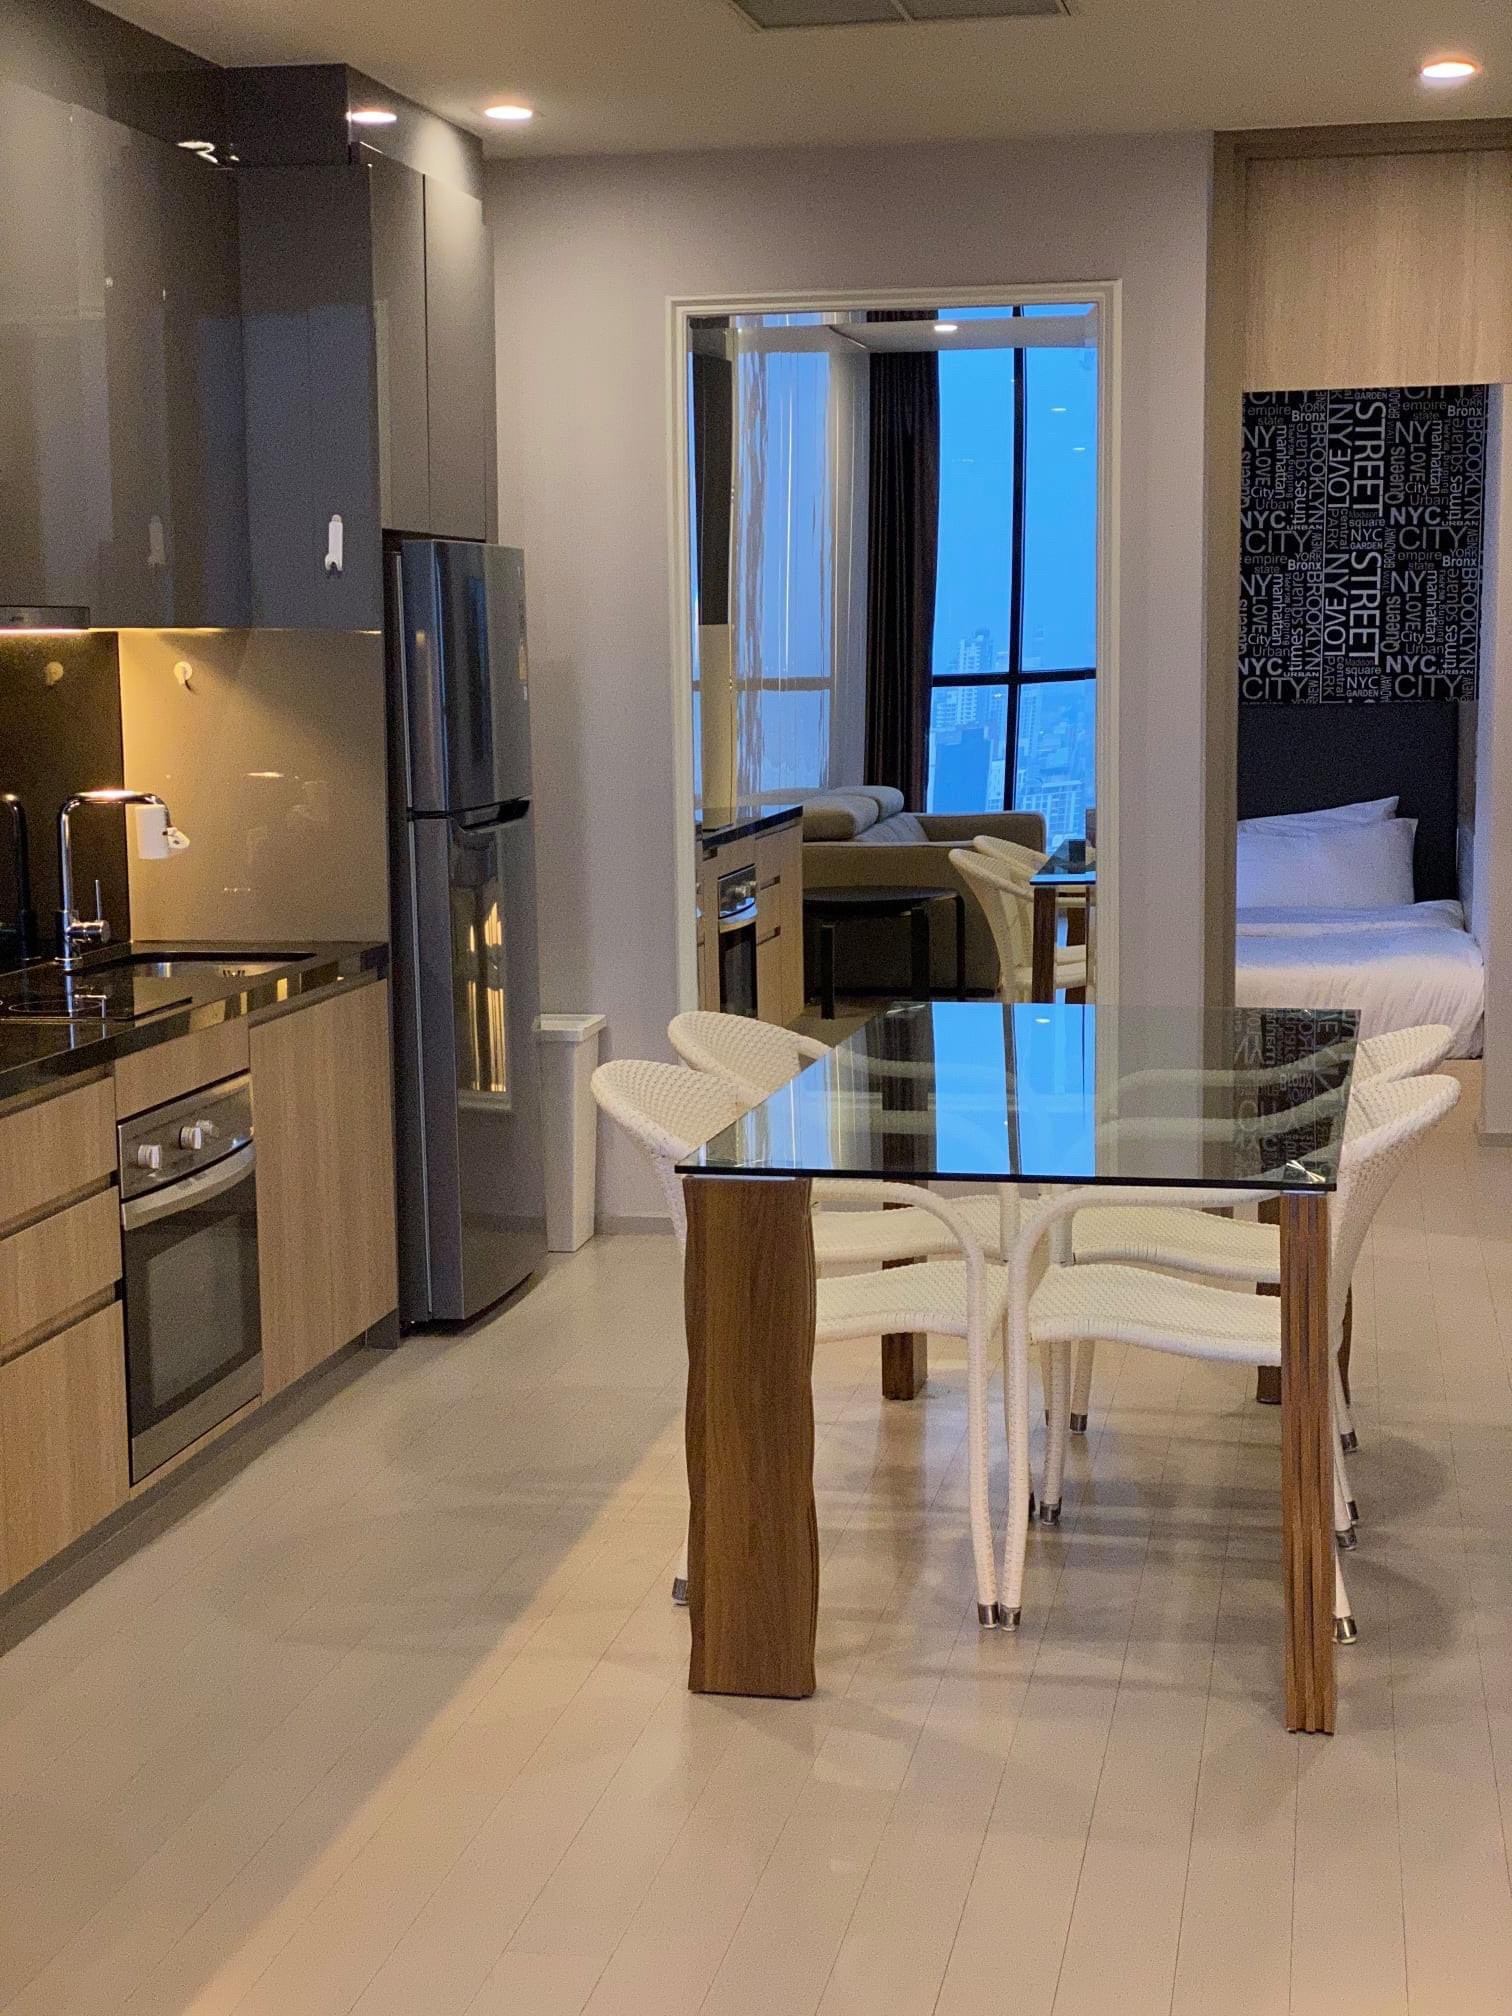 LTH3312 – Noble Ploenchit FOR RENT 2 beds 1 bath size 70 Sq.M. Nearby BTS Phloen Chit station ONLY 75k/Month